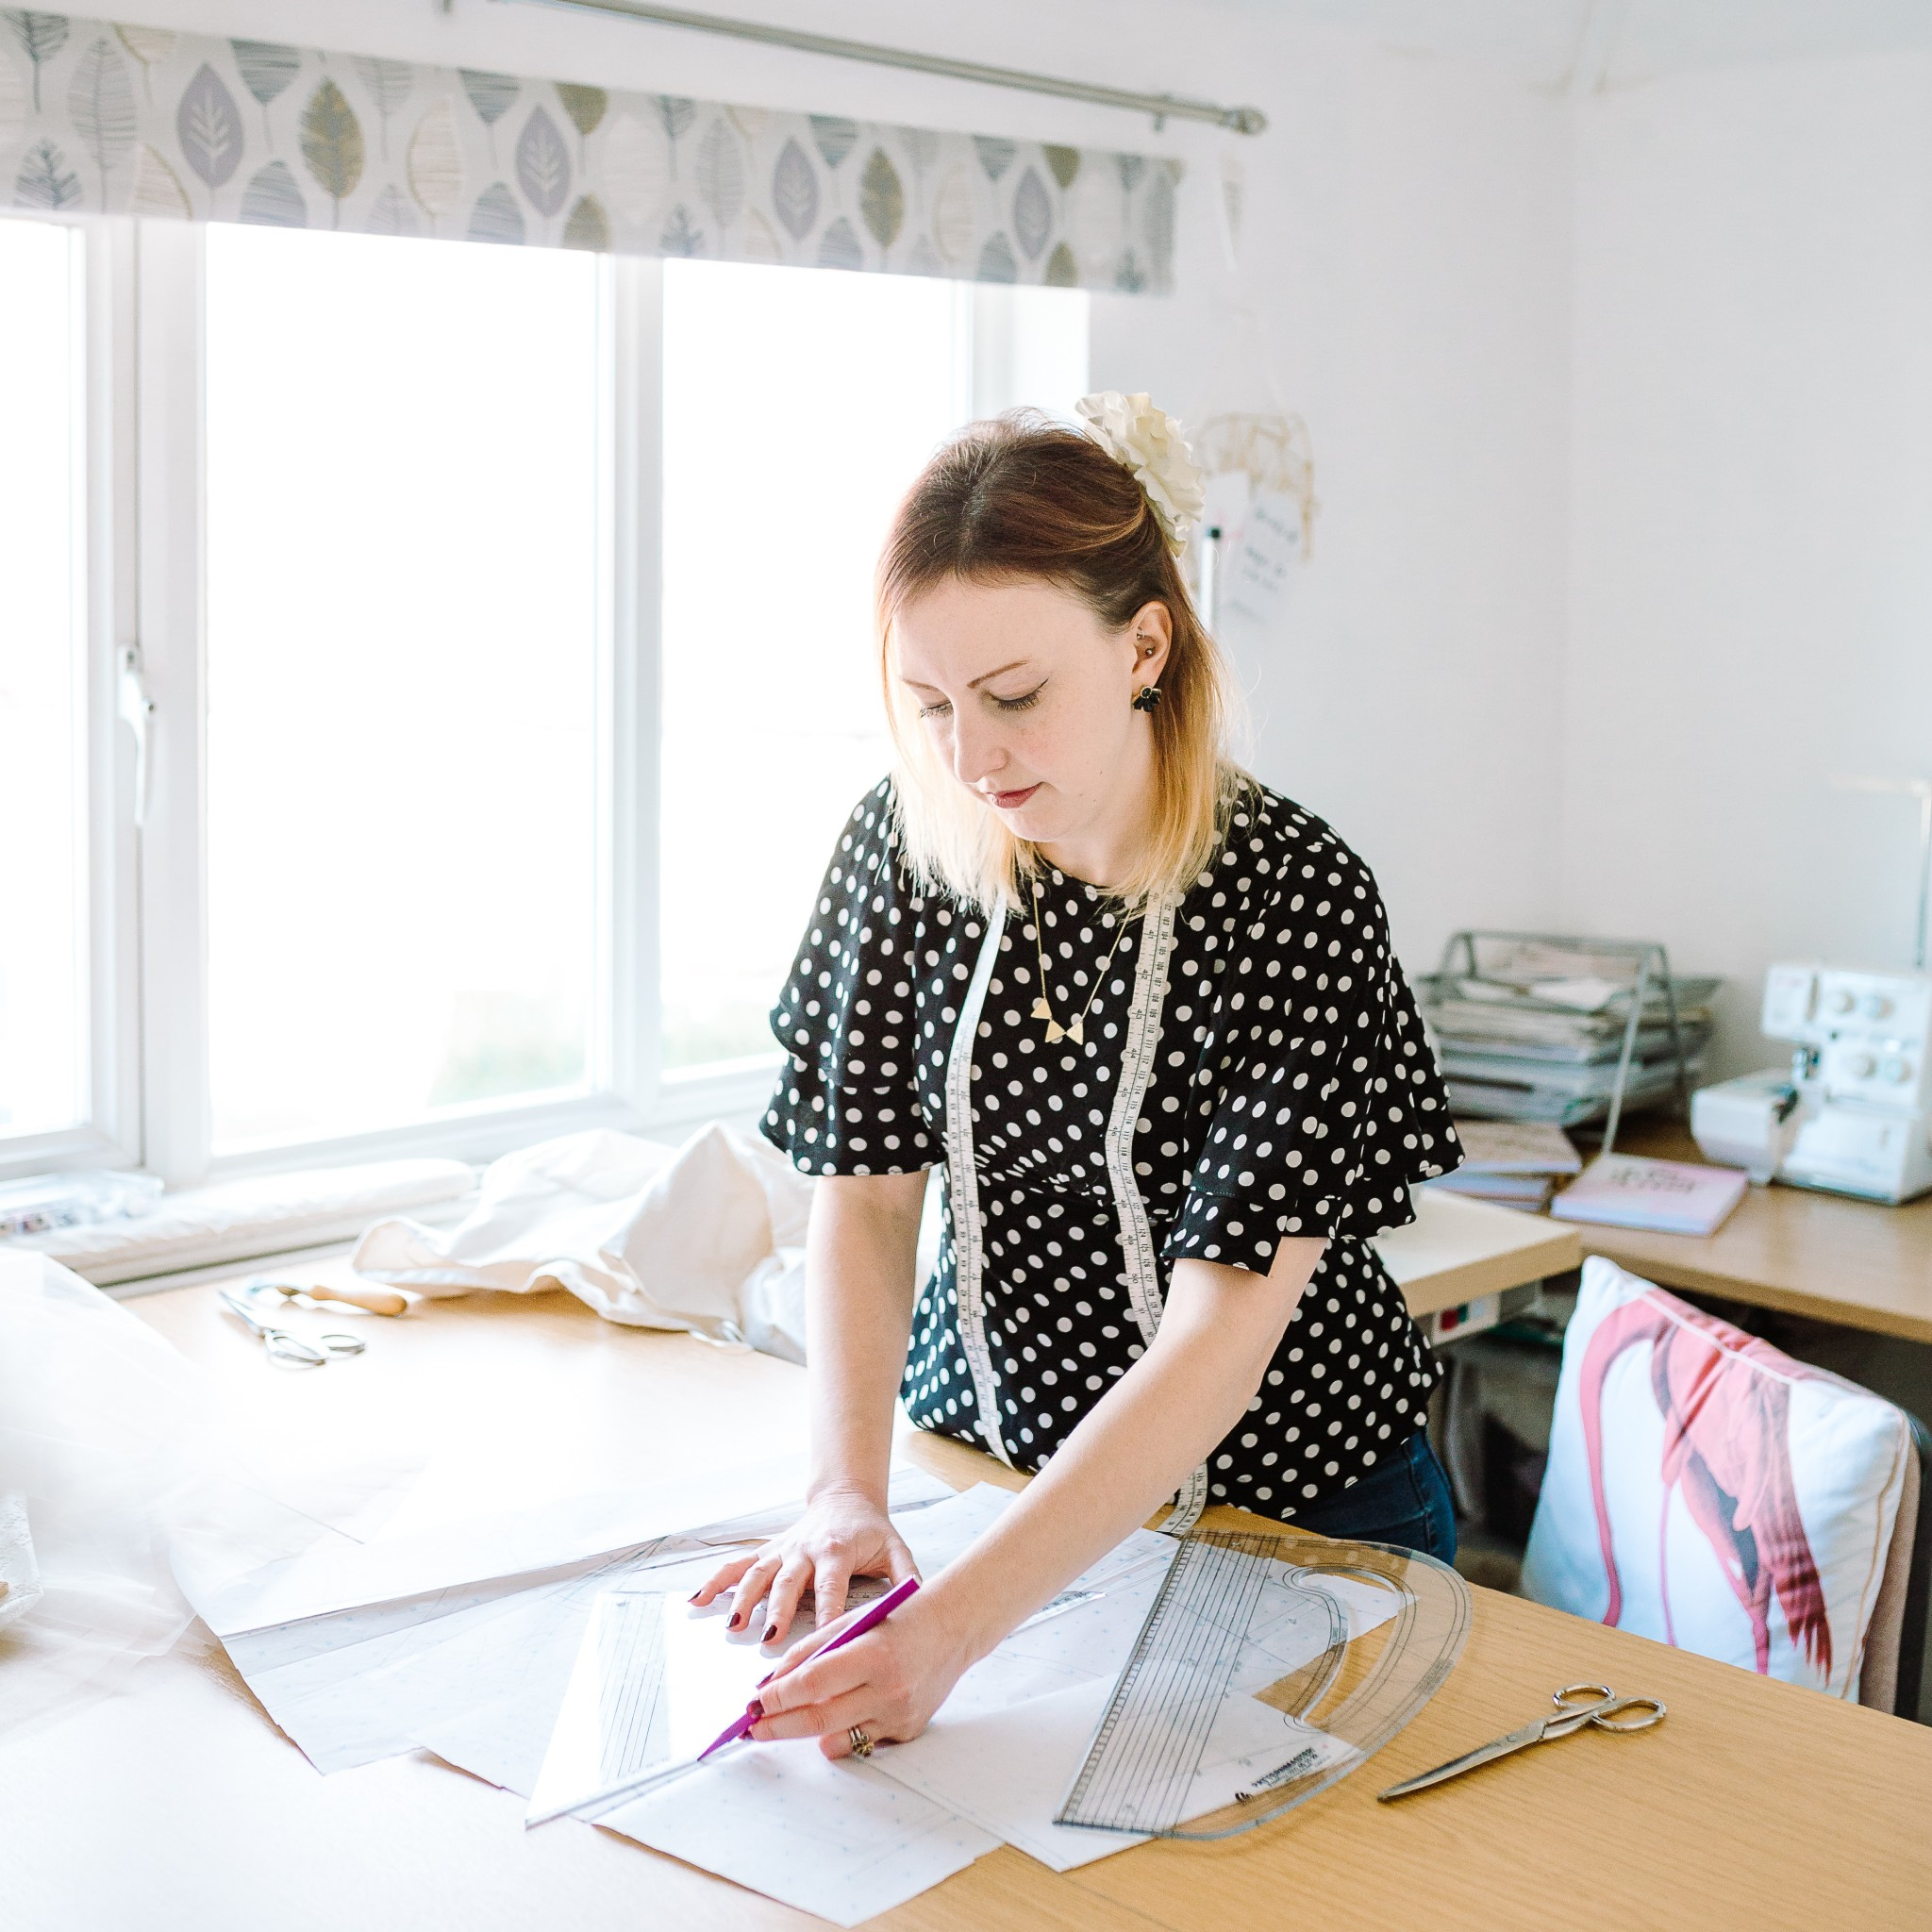 A photo from a personal branding photography session with Louise Rose Couture. Louise is standing at her pattern cutting table, measuring a sewing pattern to cut out. She's wearing a polka dot top and has a tape measure around her neck, and her overlocker is visible in the background.